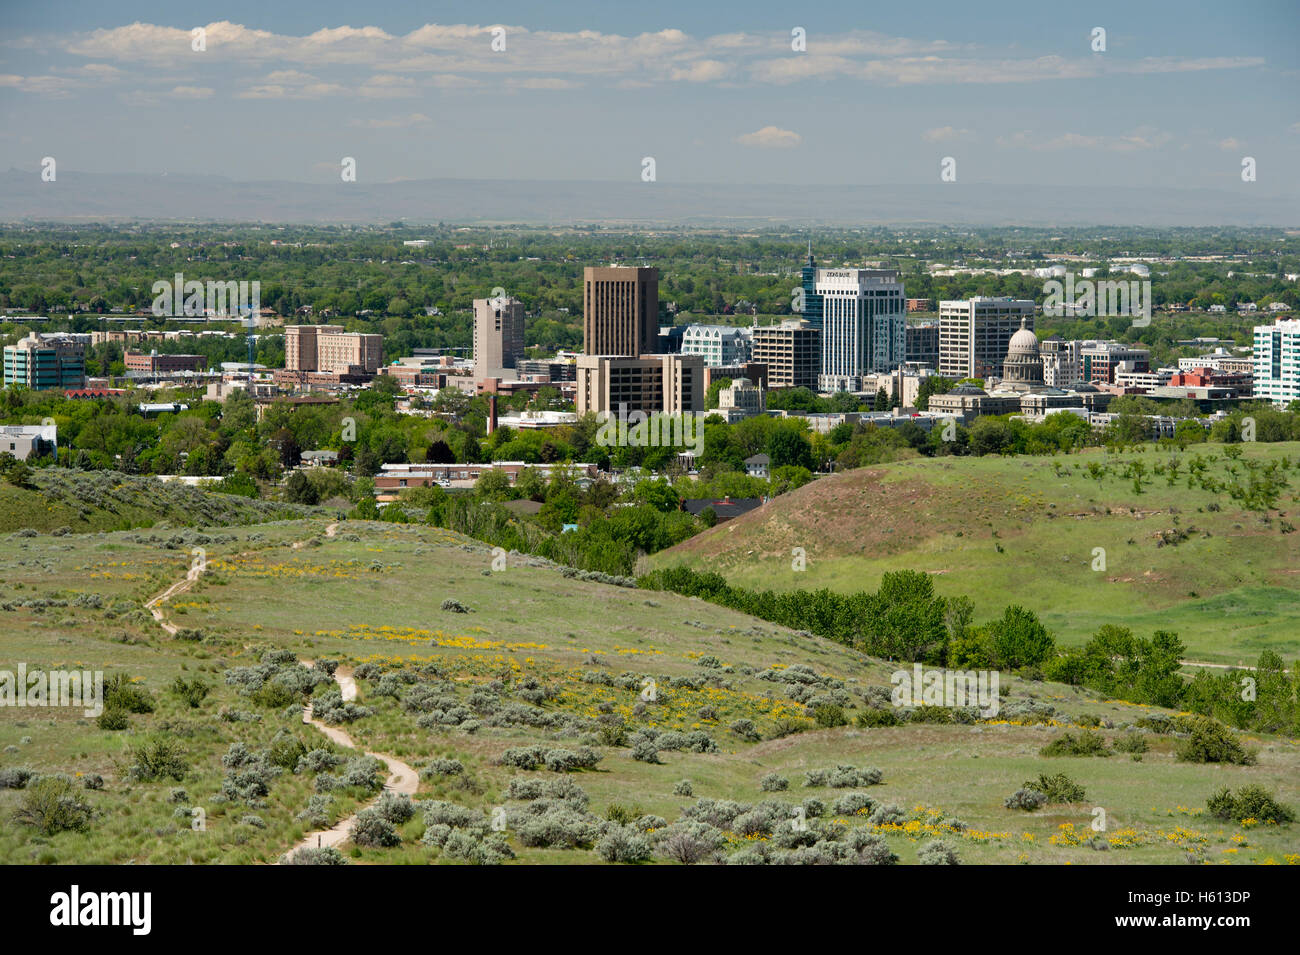 Boise Idaho looking south from foothills - Stock Image